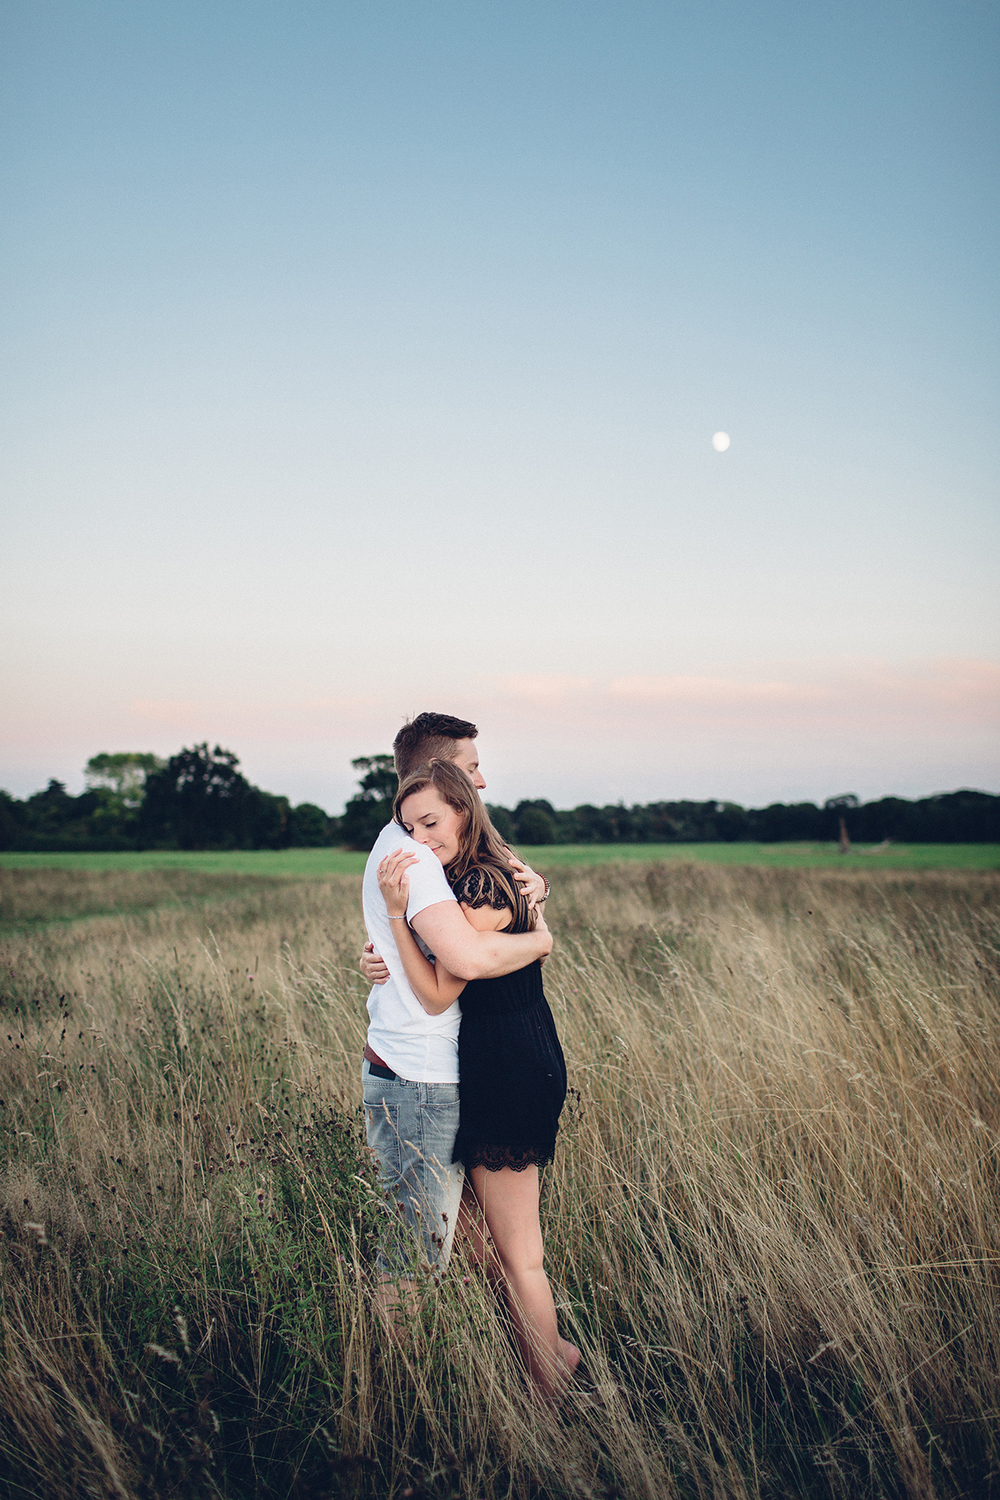 Andrew_Eve_Prewed-84.jpg